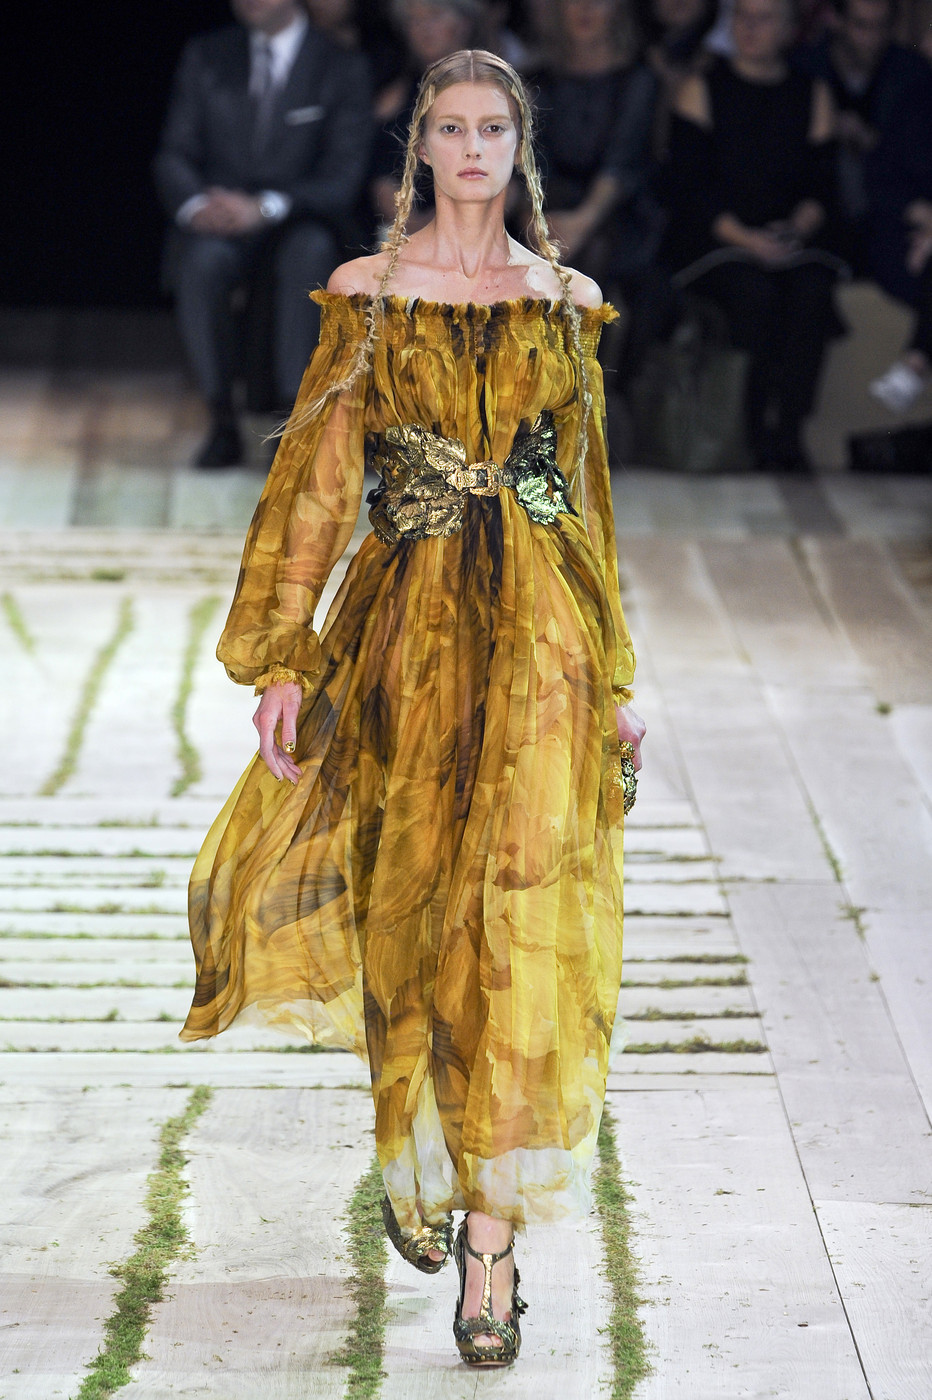 via fashioned by love | Alexander McQueen Spring/Summer 2011 | floral trend